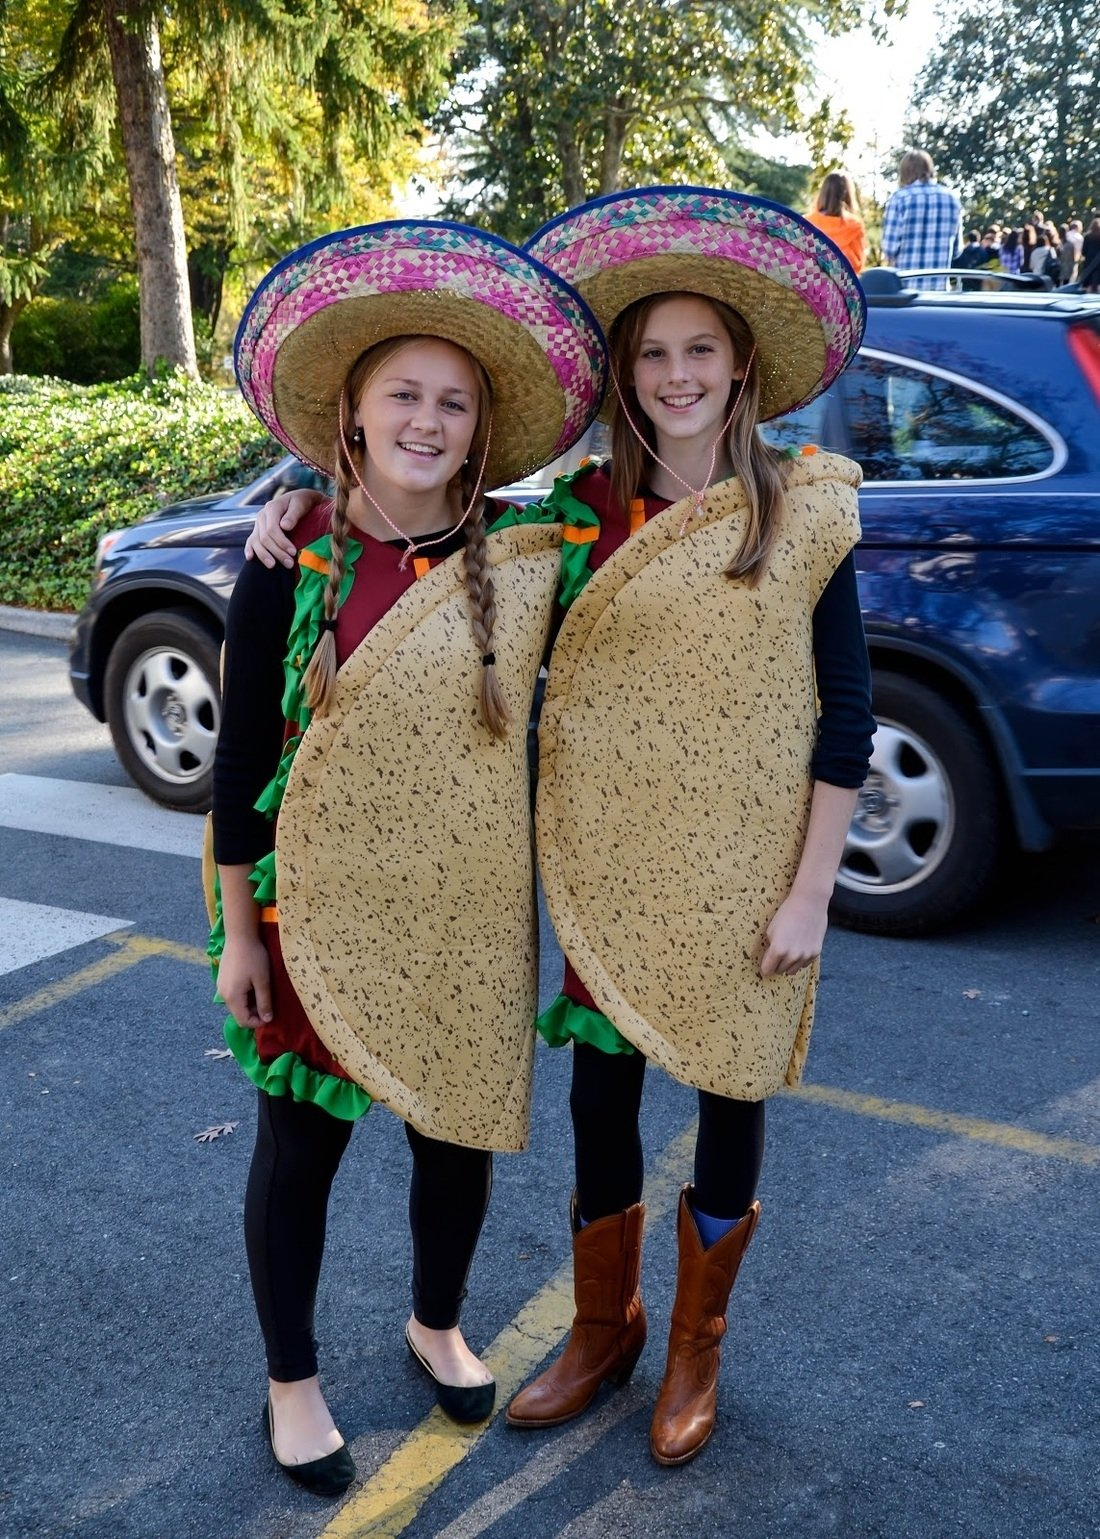 cute twin day outfits!